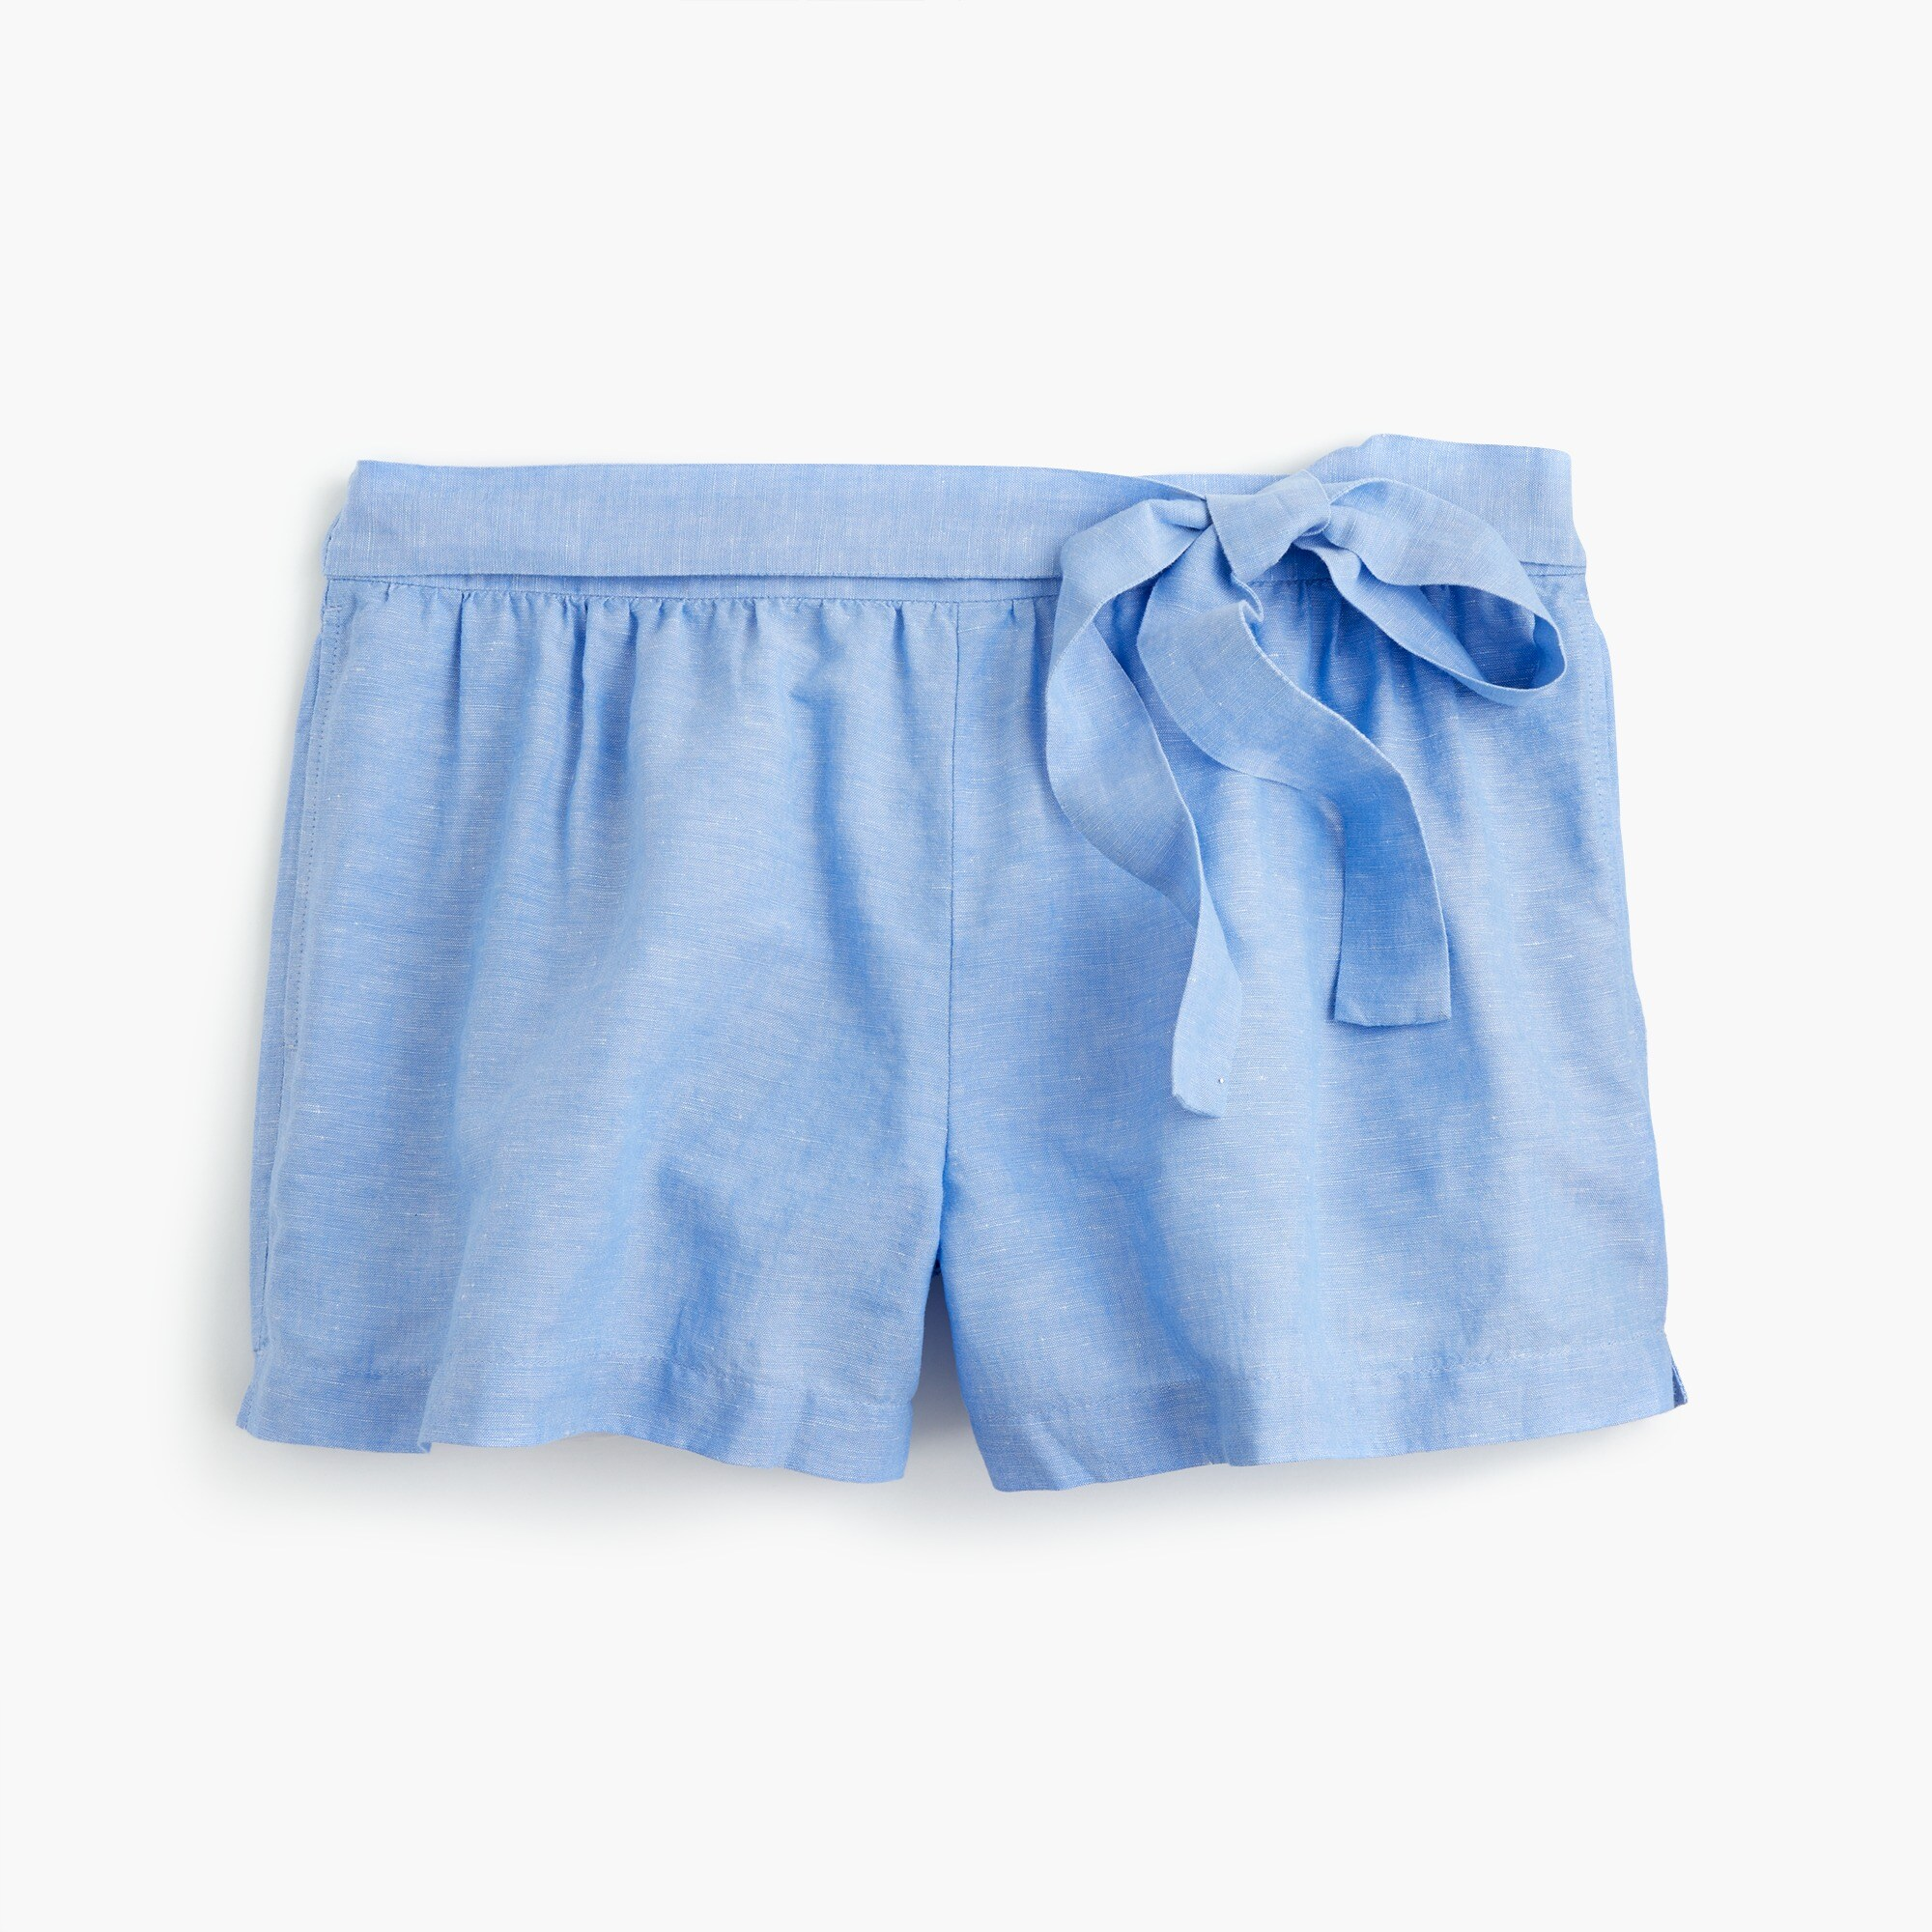 Image 1 for Linen short with side tie